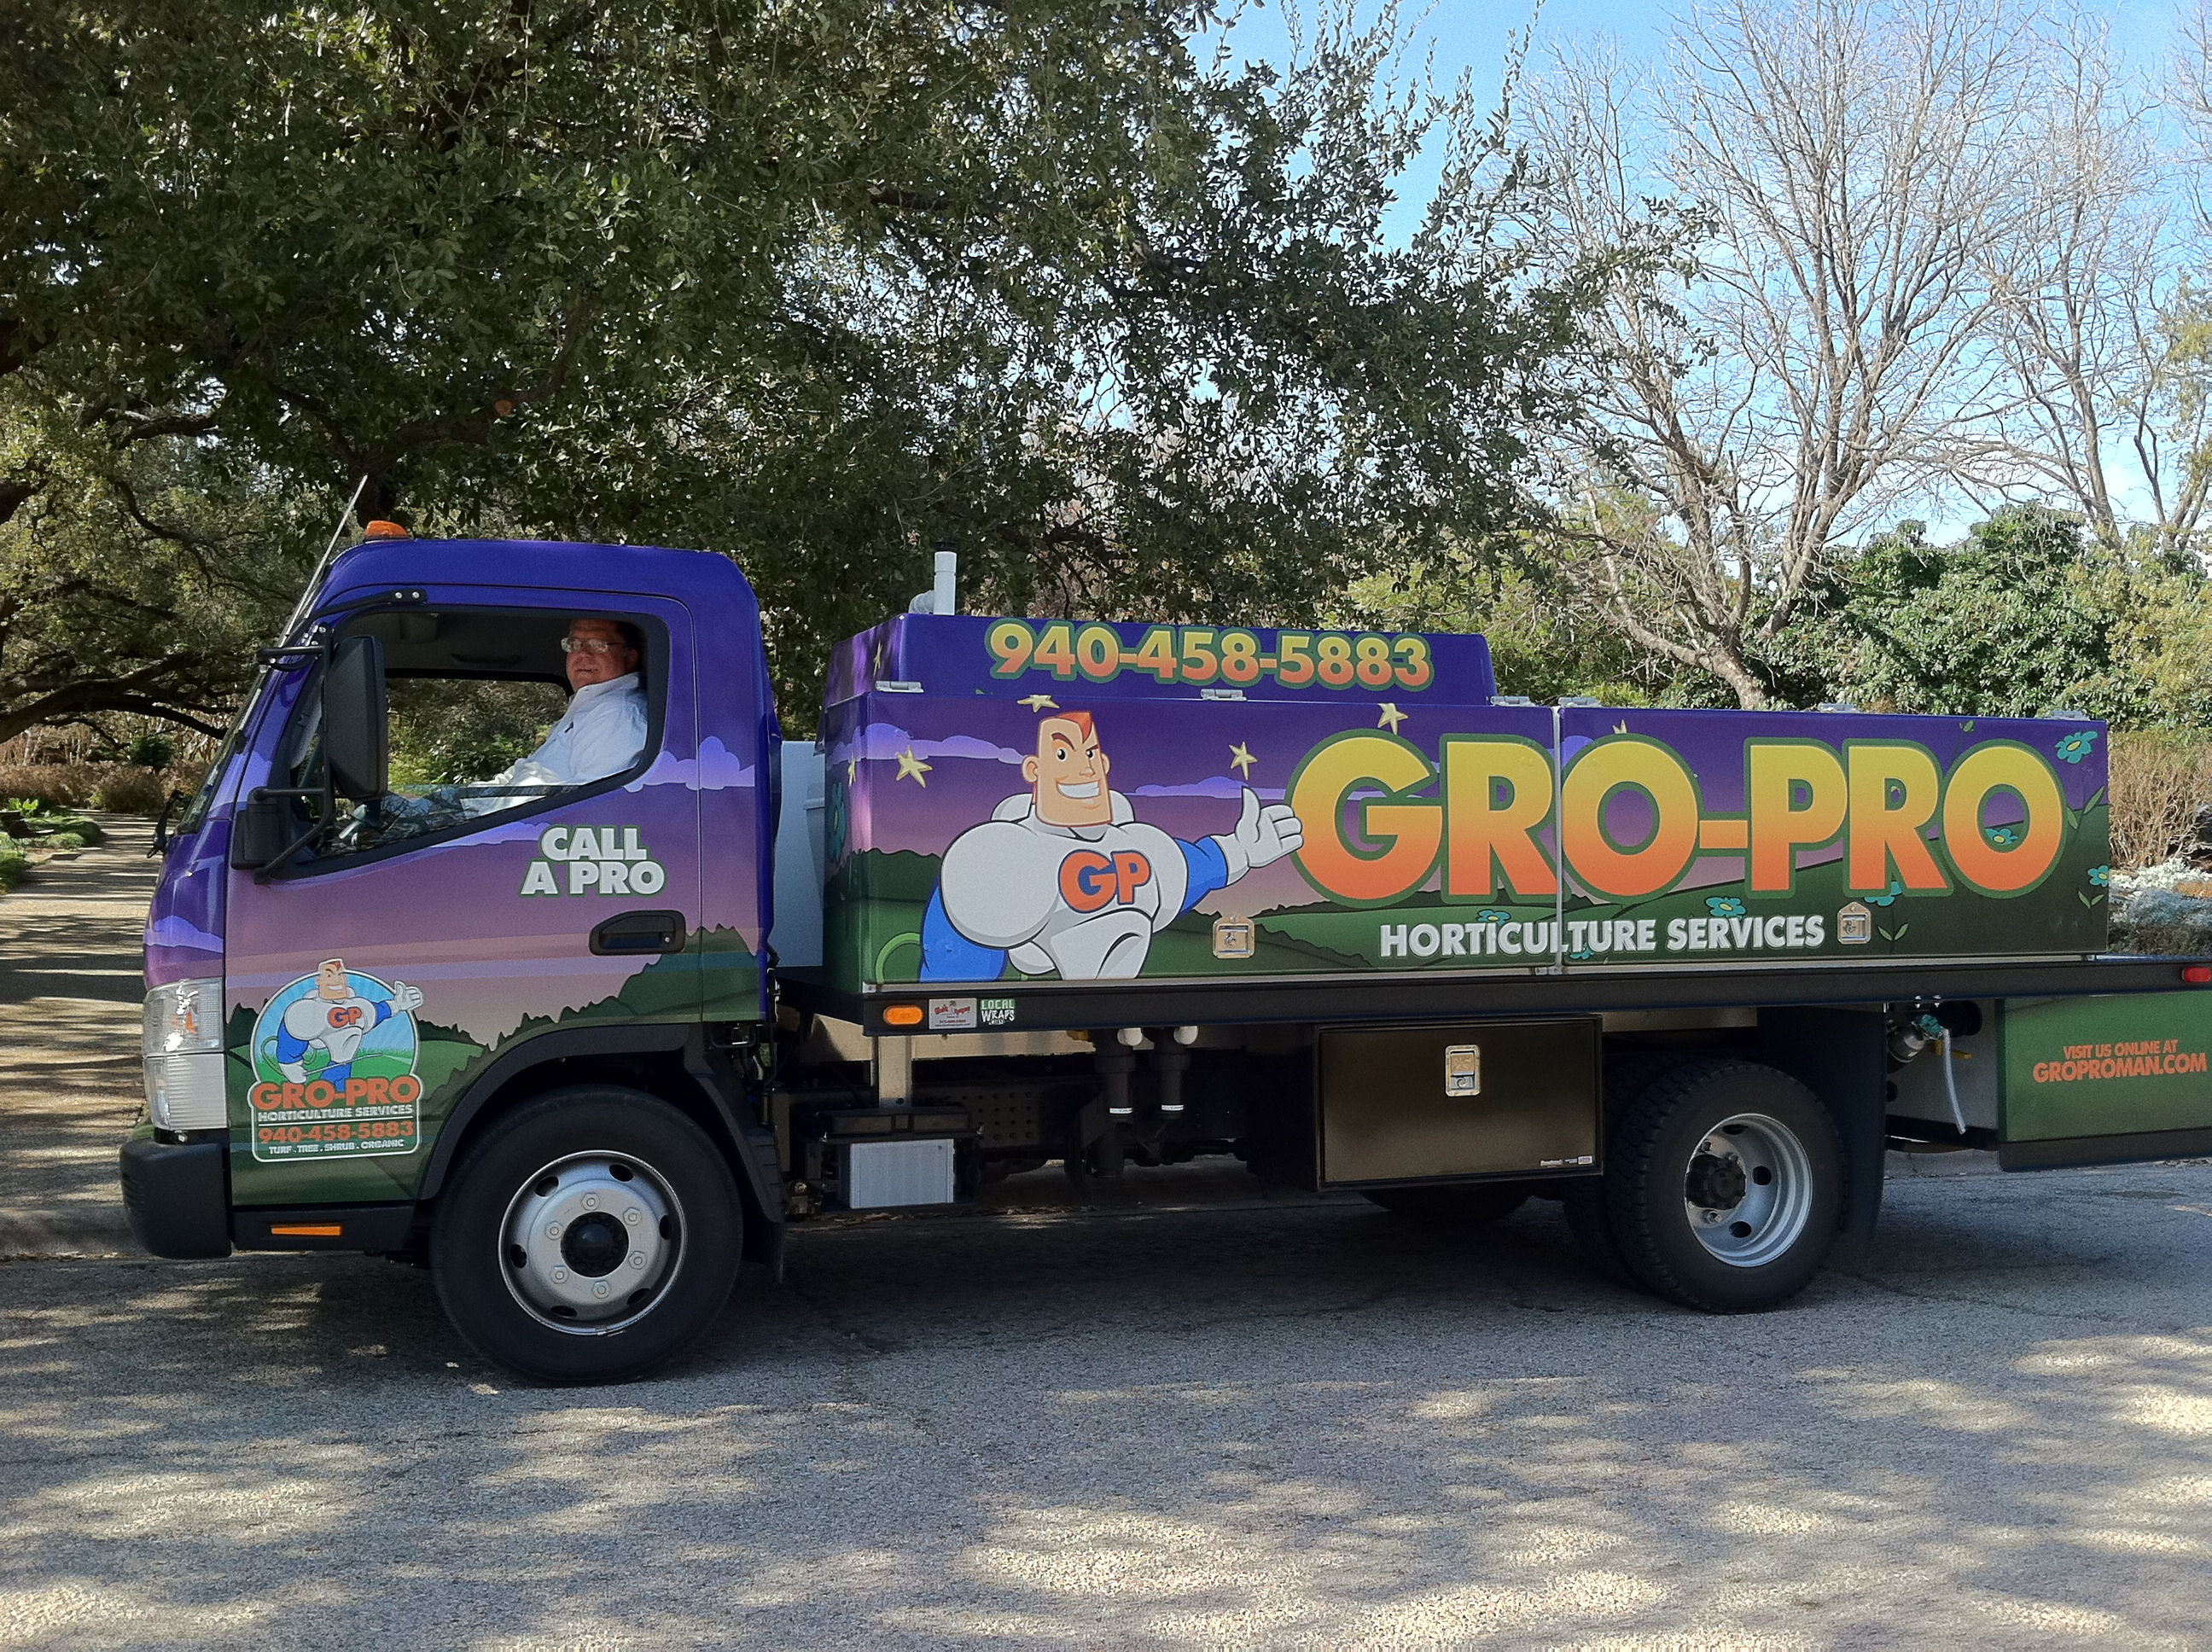 Gro-Pro Horticulture Services, Inc. image 1